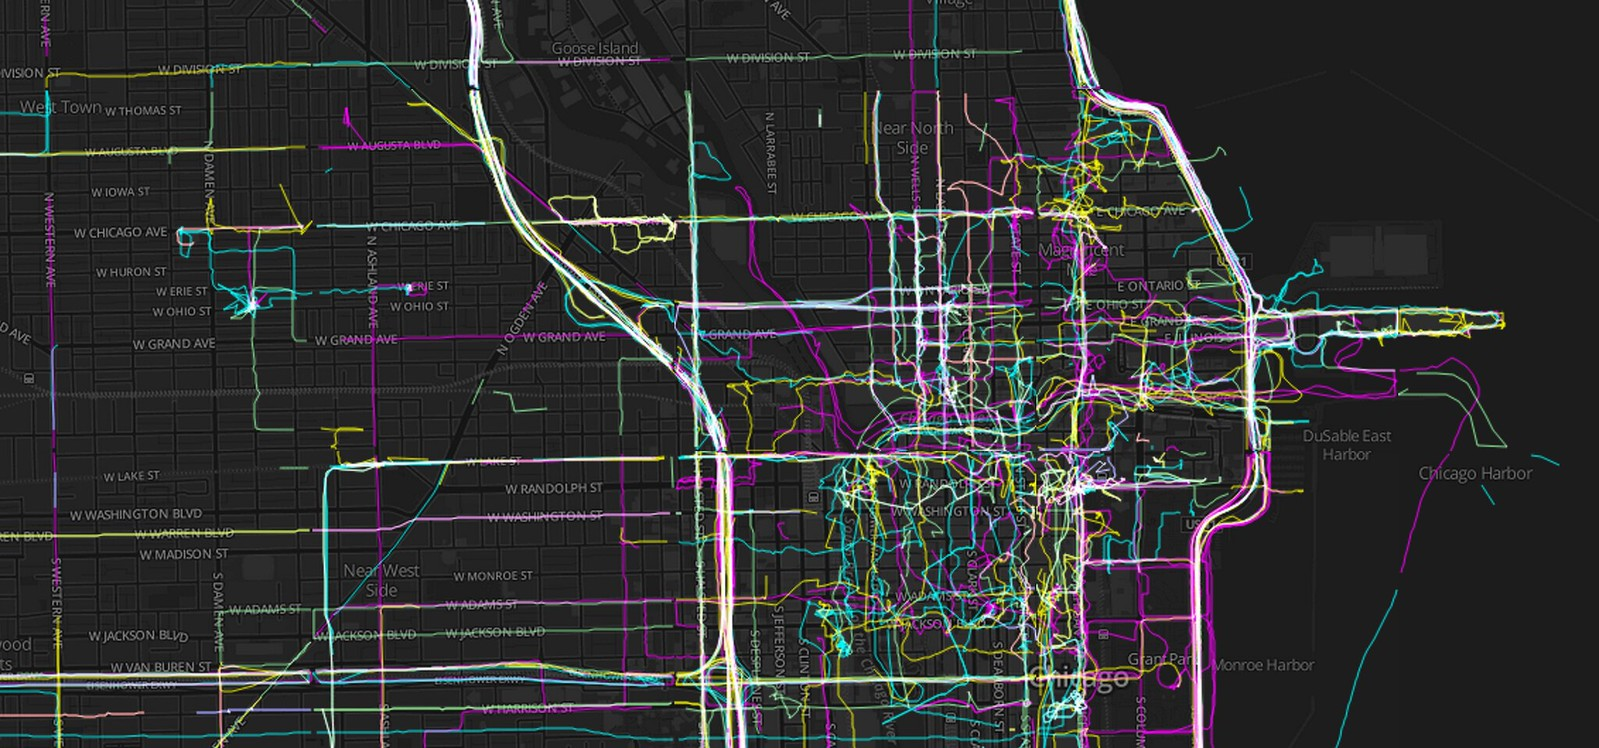 Chicago GPX Tracks